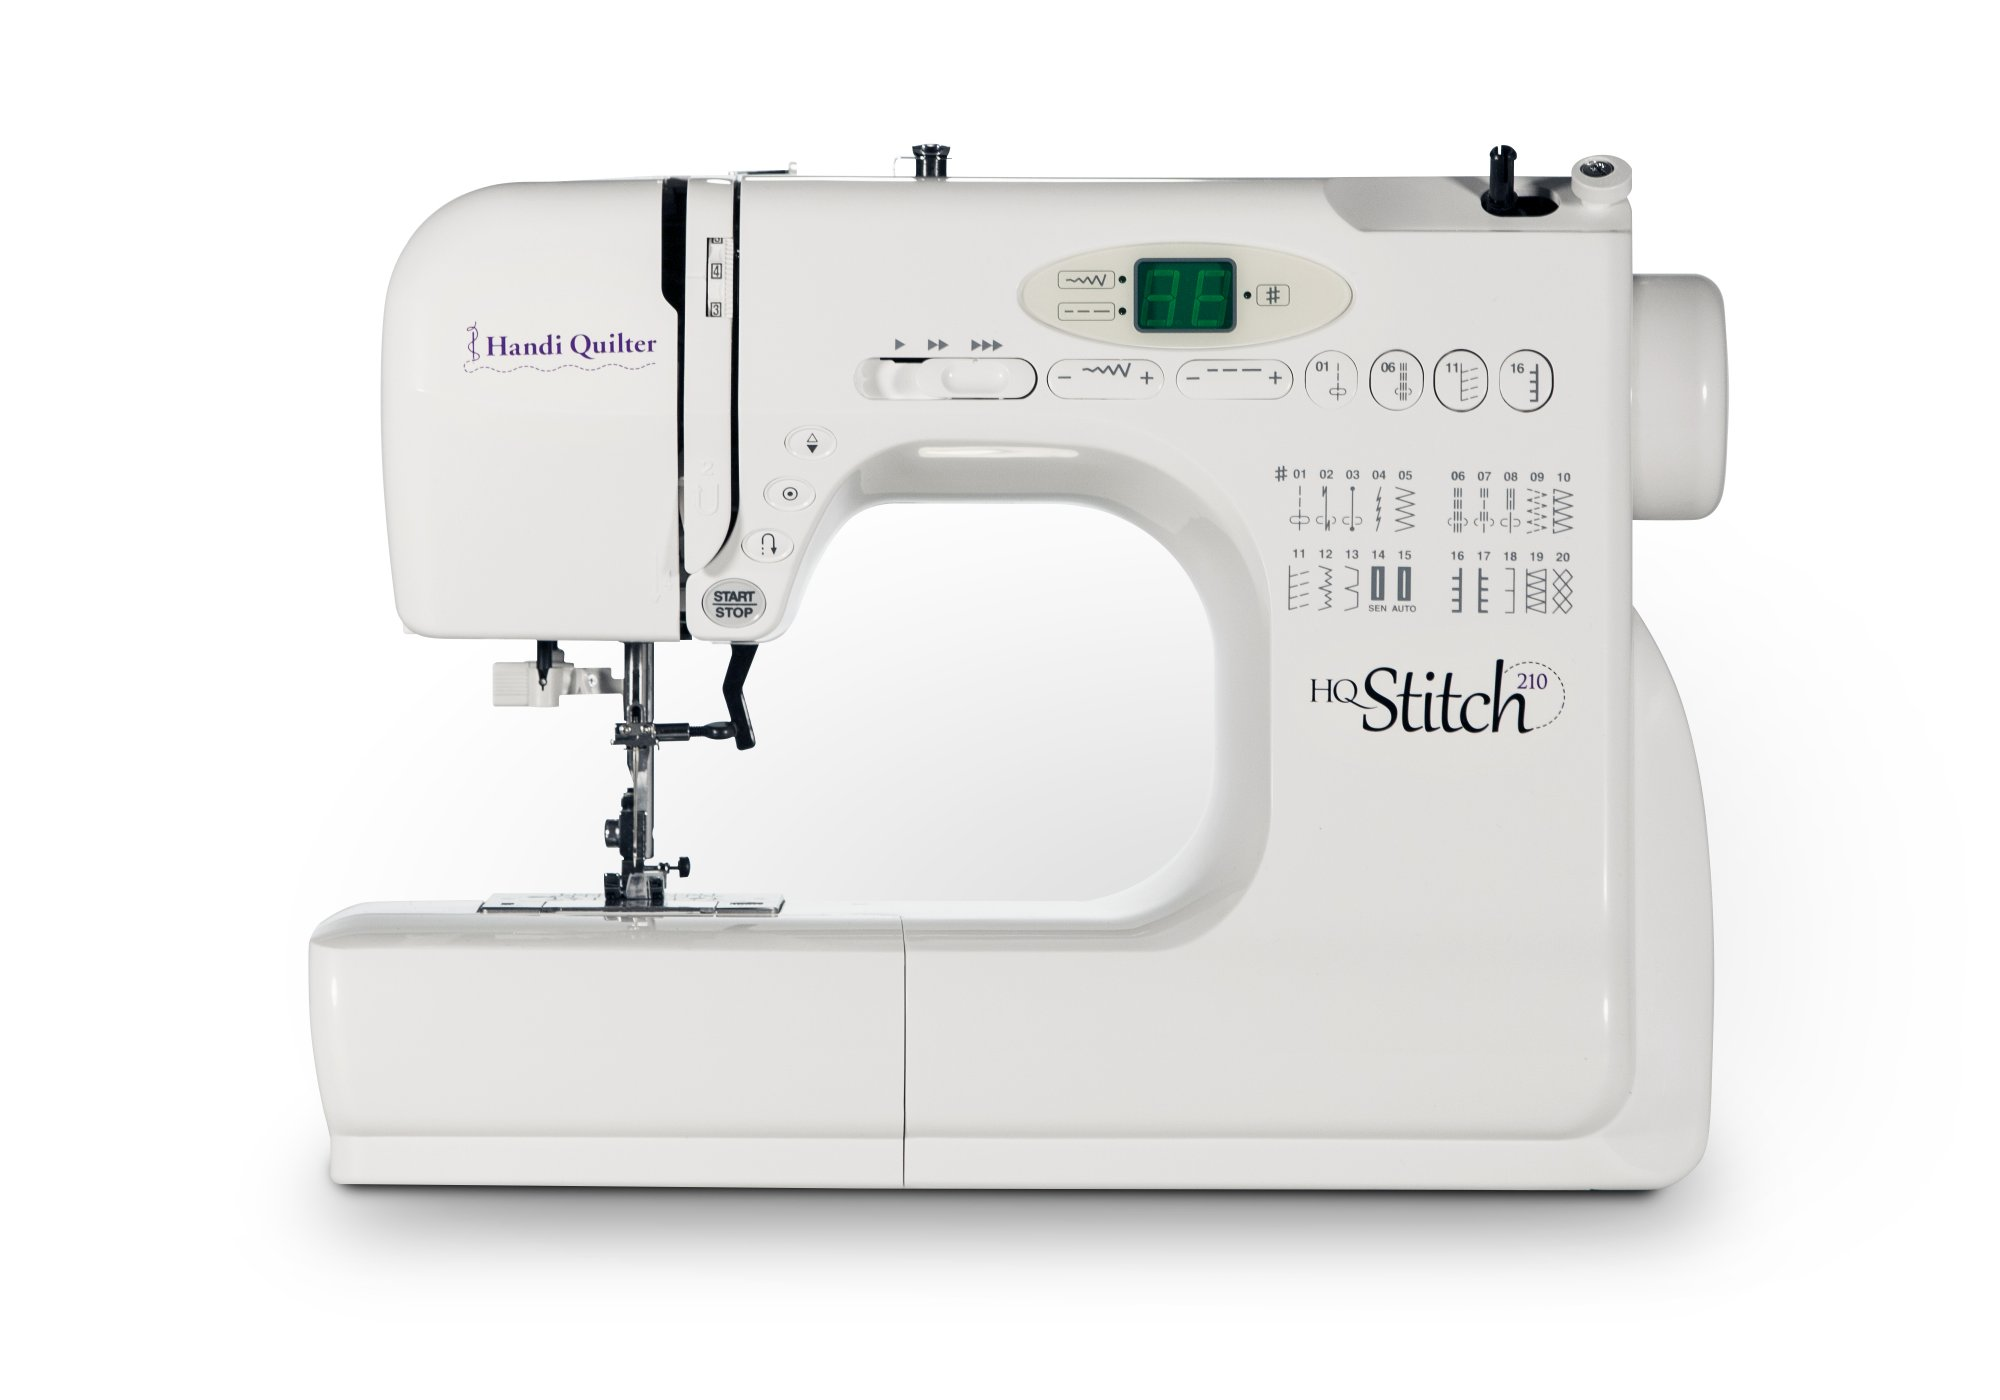 HQ Stitch 210 Machine